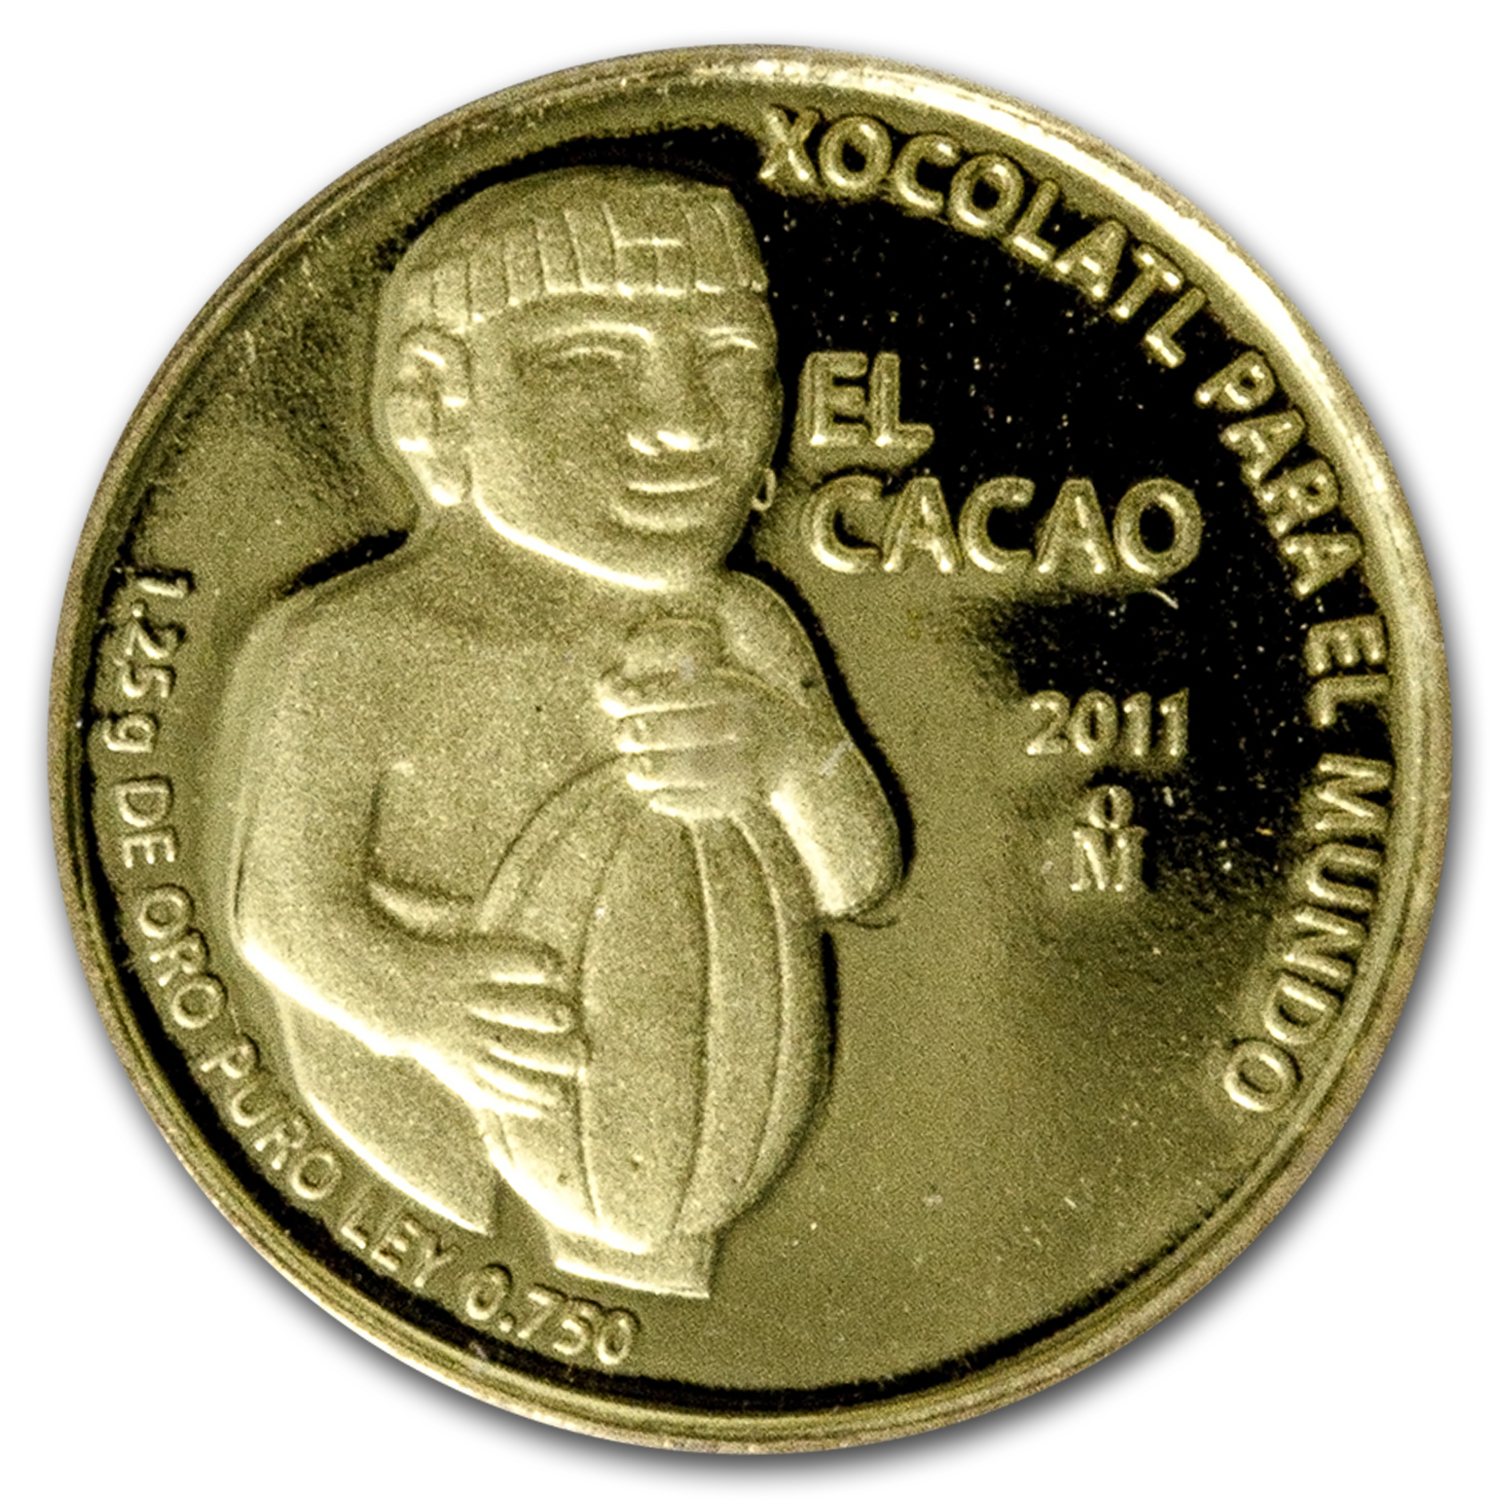 2011 Mexico Gold El Cacao Proof